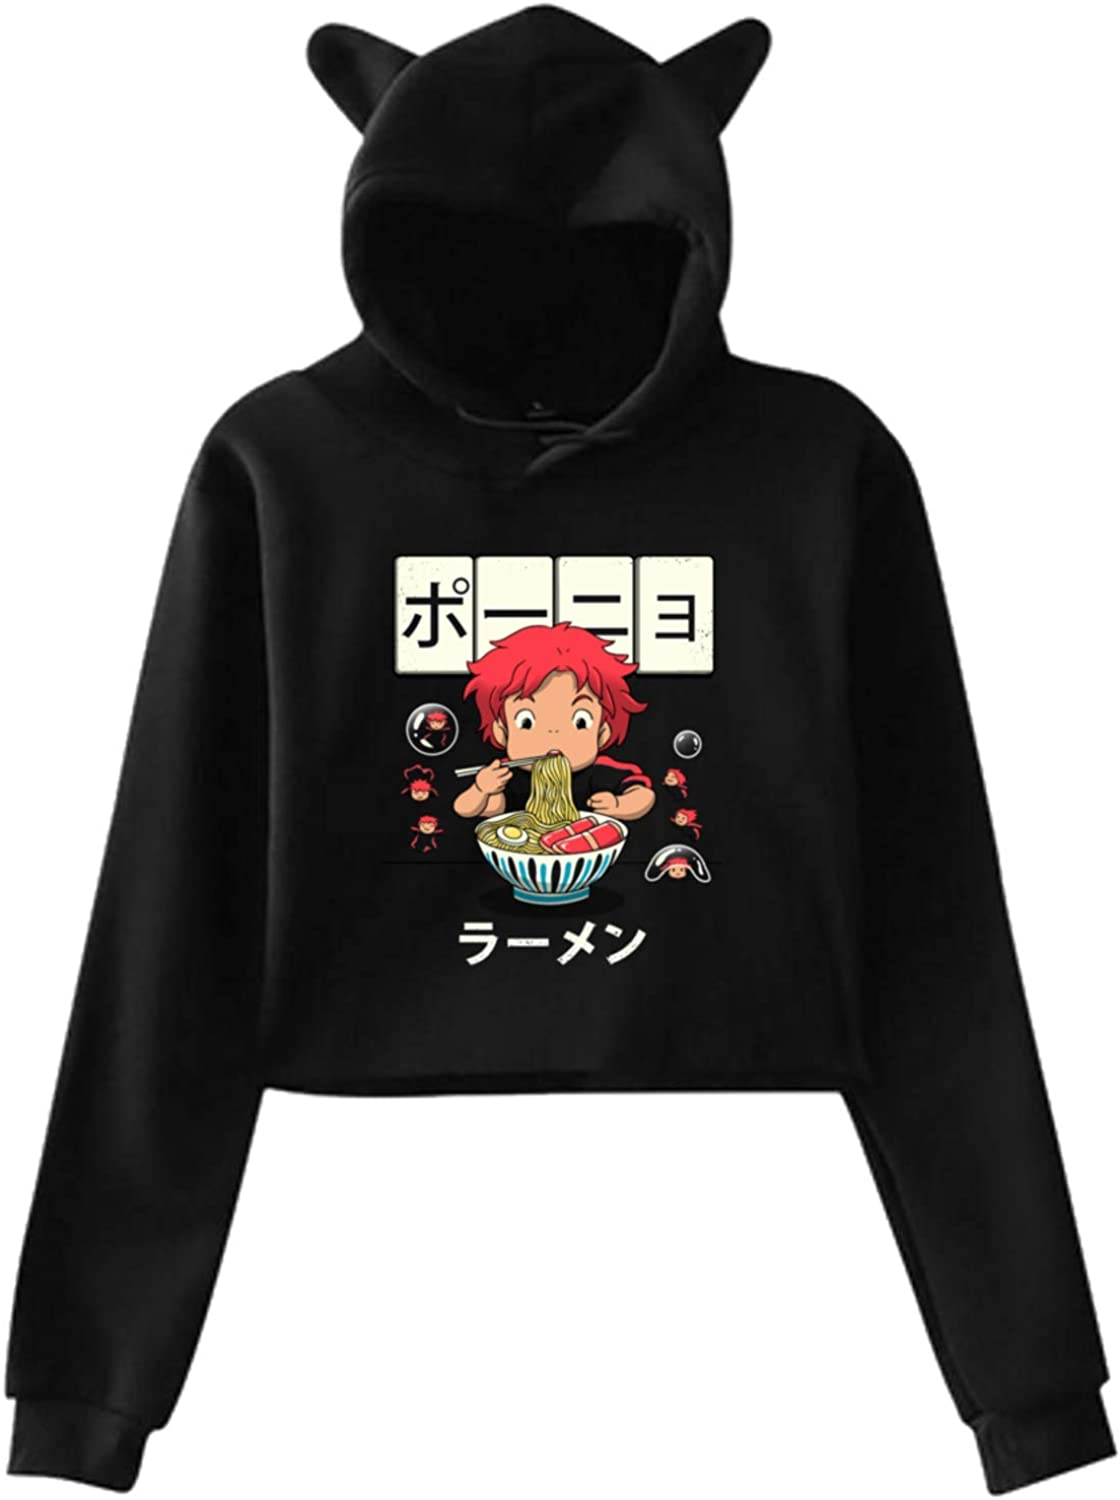 Anime Ponyo Goldfish Ramen Bowl Factory outlet Low price Women Ear Hoodie Pullover Cat Ho